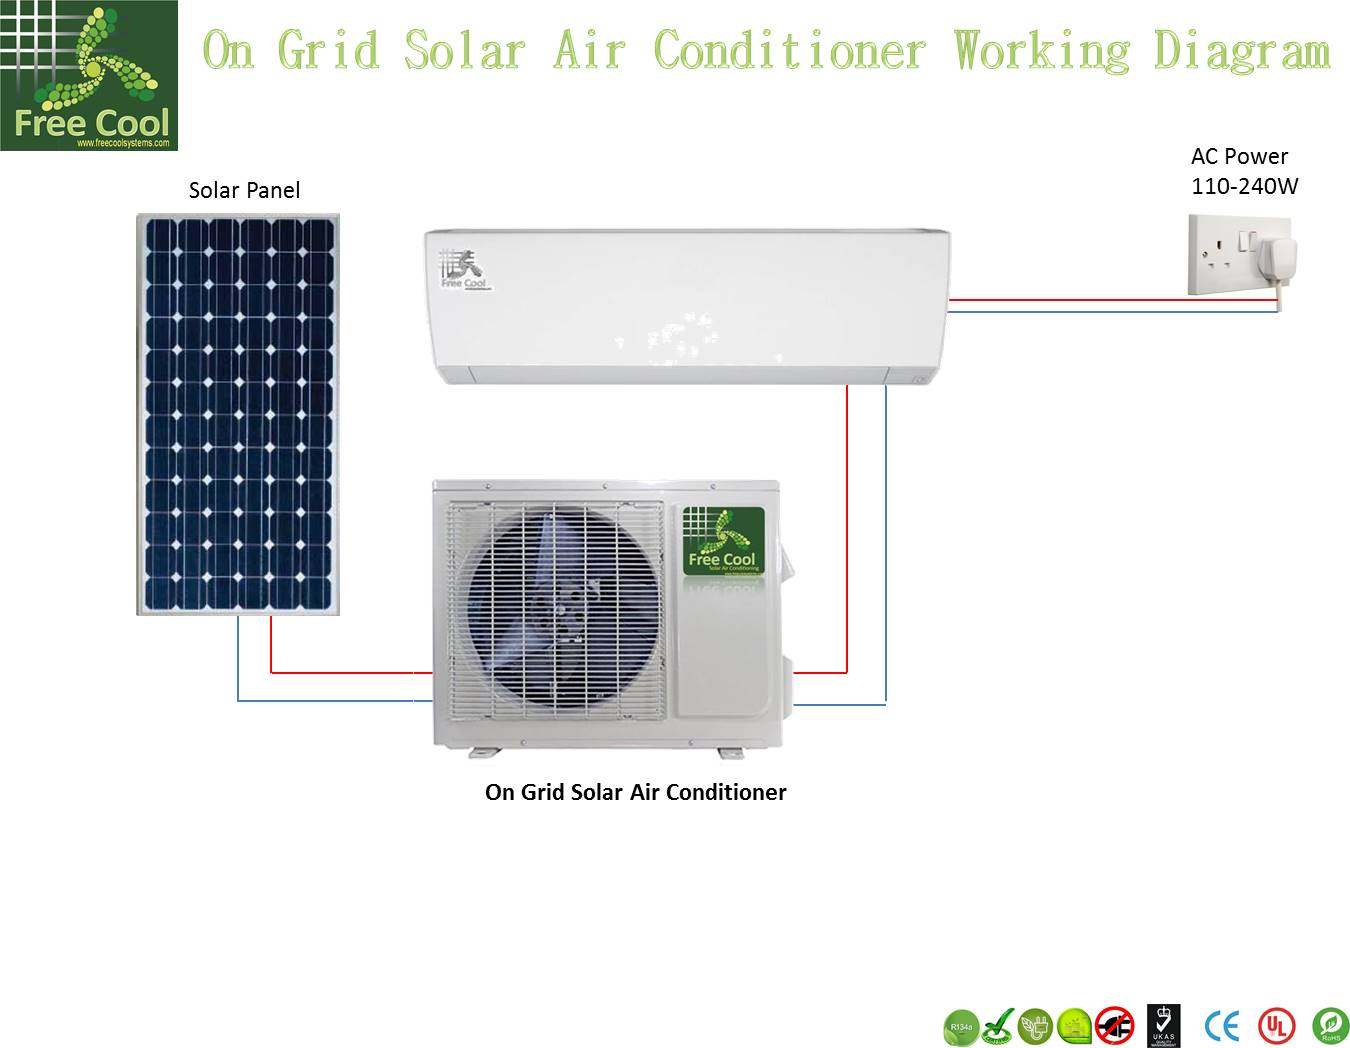 On Grid Solar Air Conditioner #993232